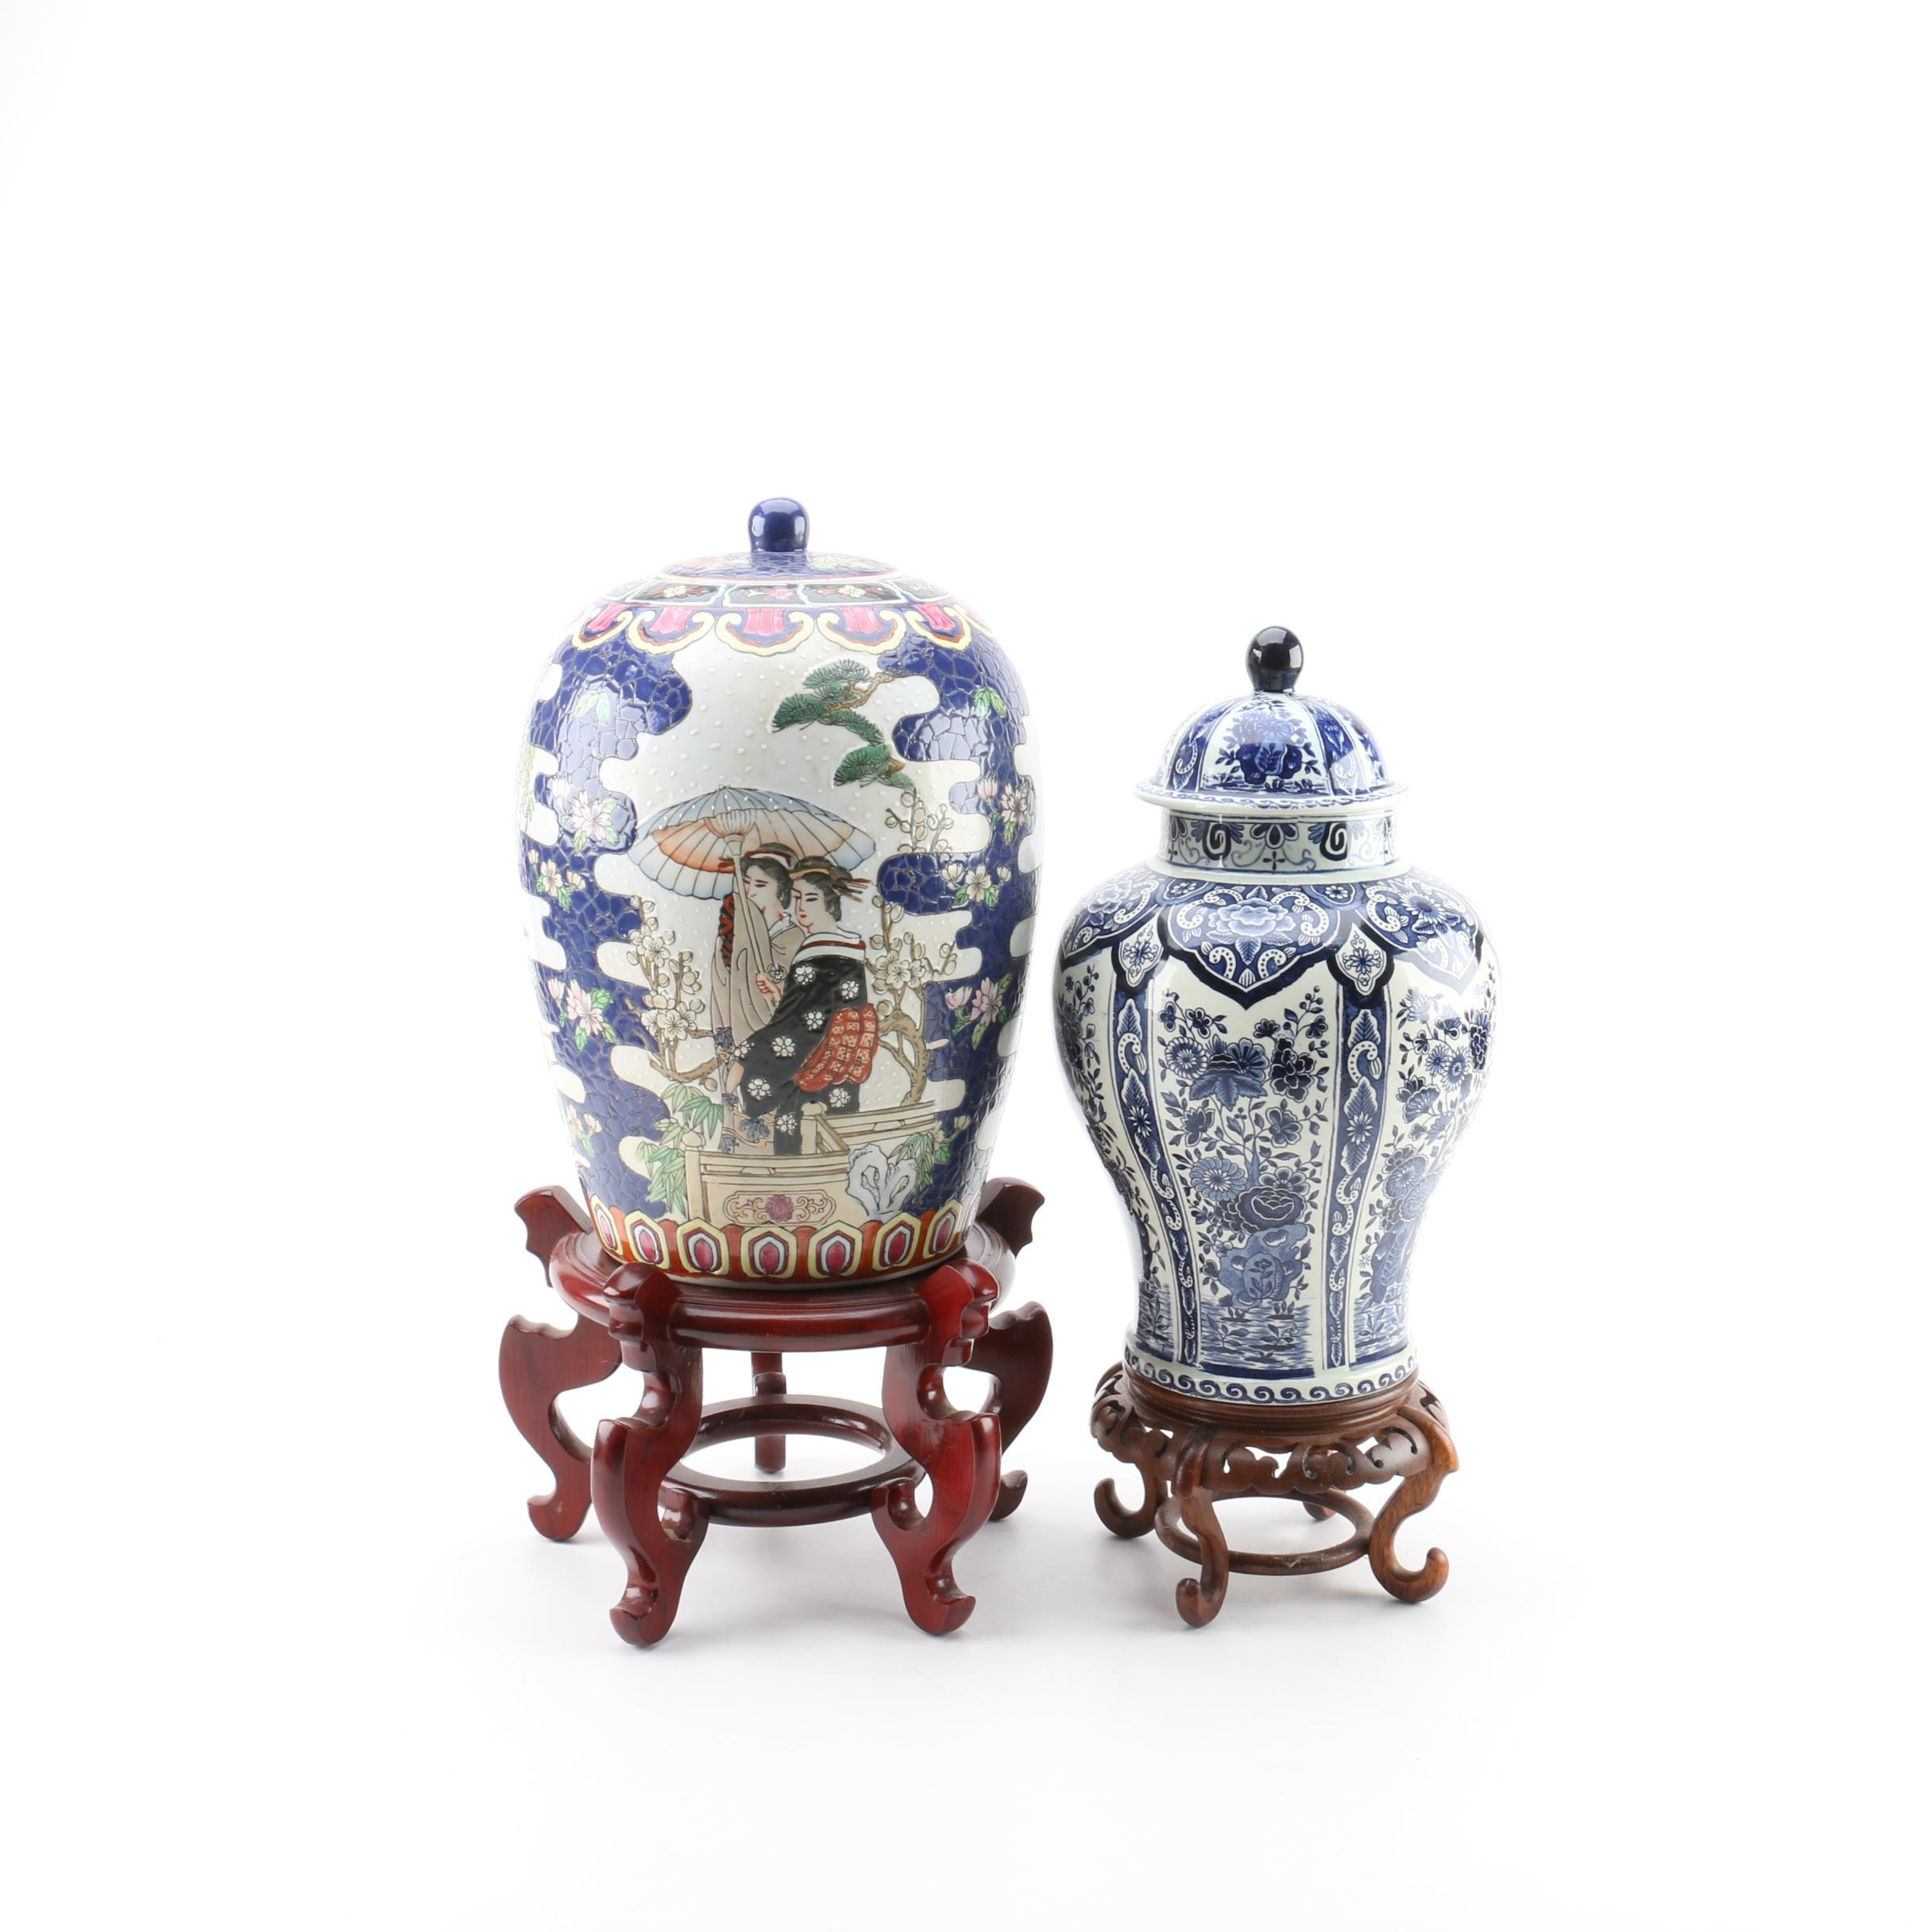 Asian Inspired Ceramic Ginger Jars with Wooden Stands